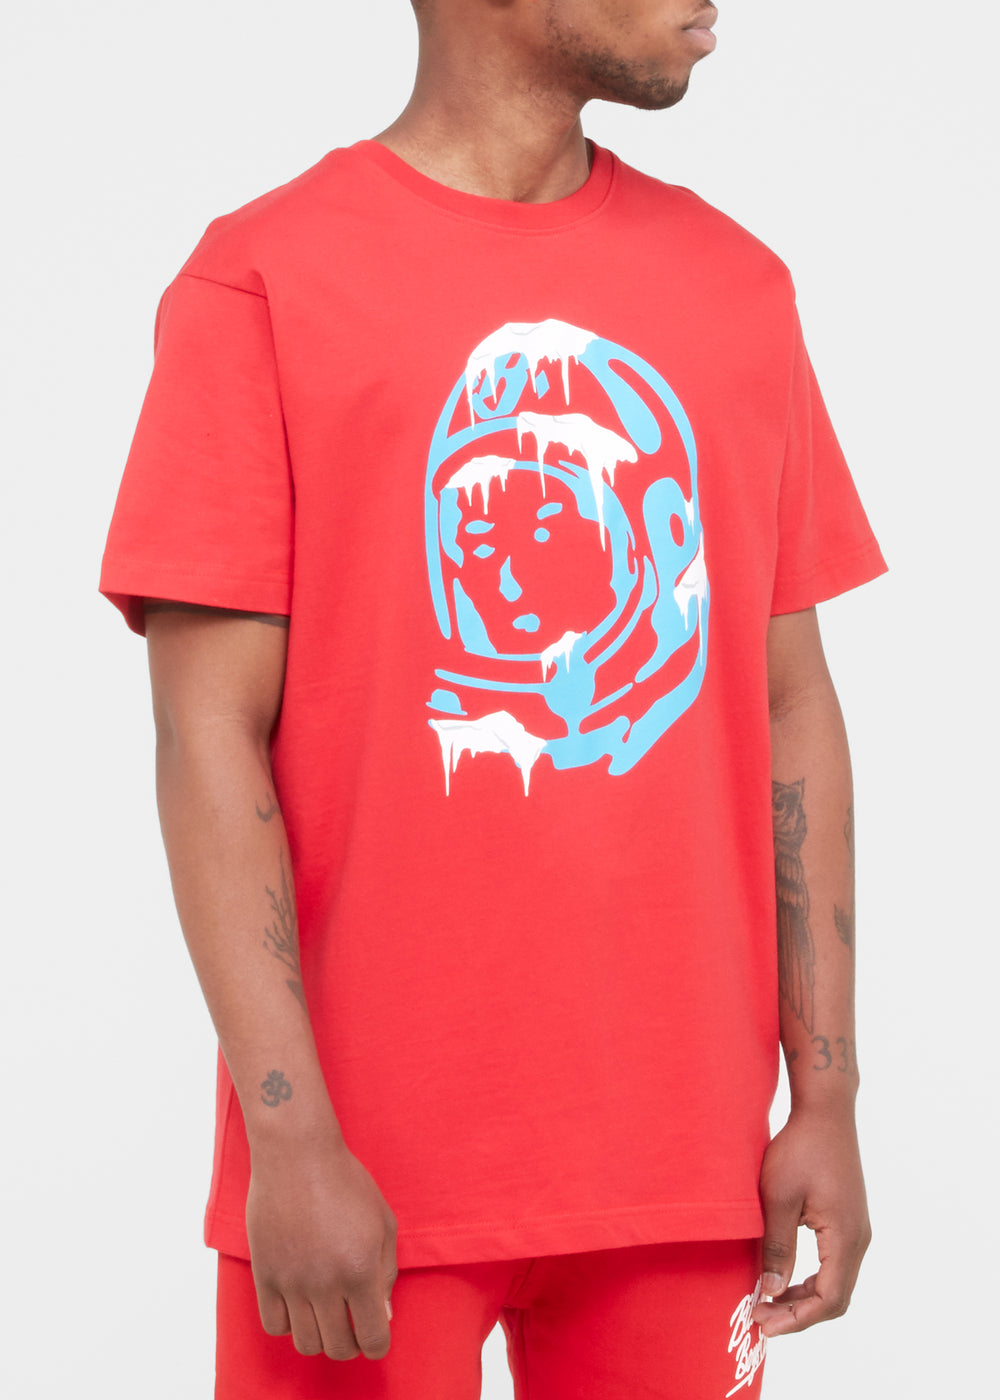 billionaire-boys-club-bbc-av-hlmt-tee-891-8208-red-red-2